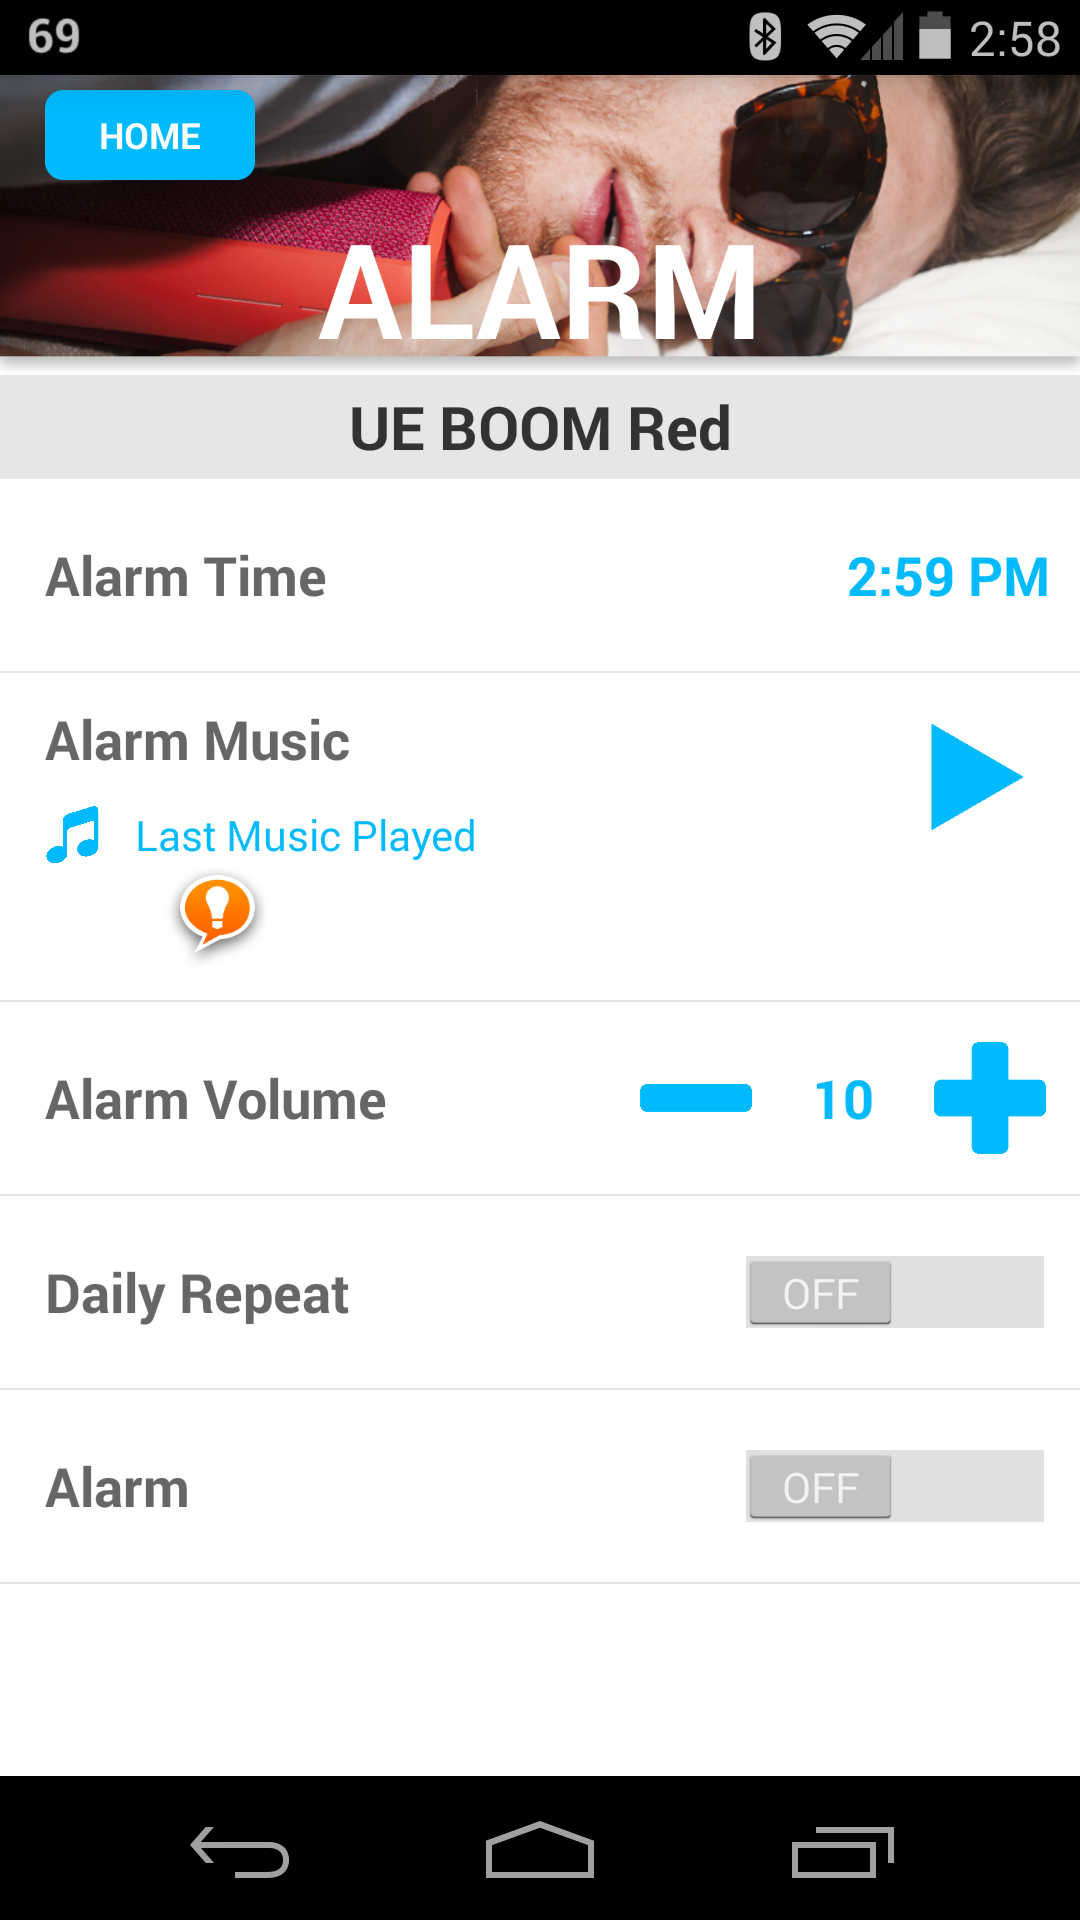 Ultimate Ears Updates UE BOOM Firmware And Android App To Offer New